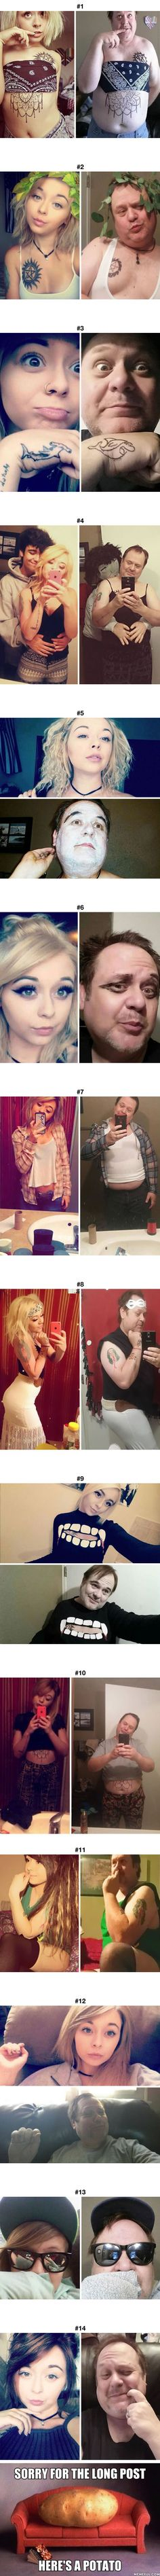 <3 this!! Dad Who's Been Trolling Daughter By Recreating Her Racy Selfies Now Has 2x More Followers Than Her